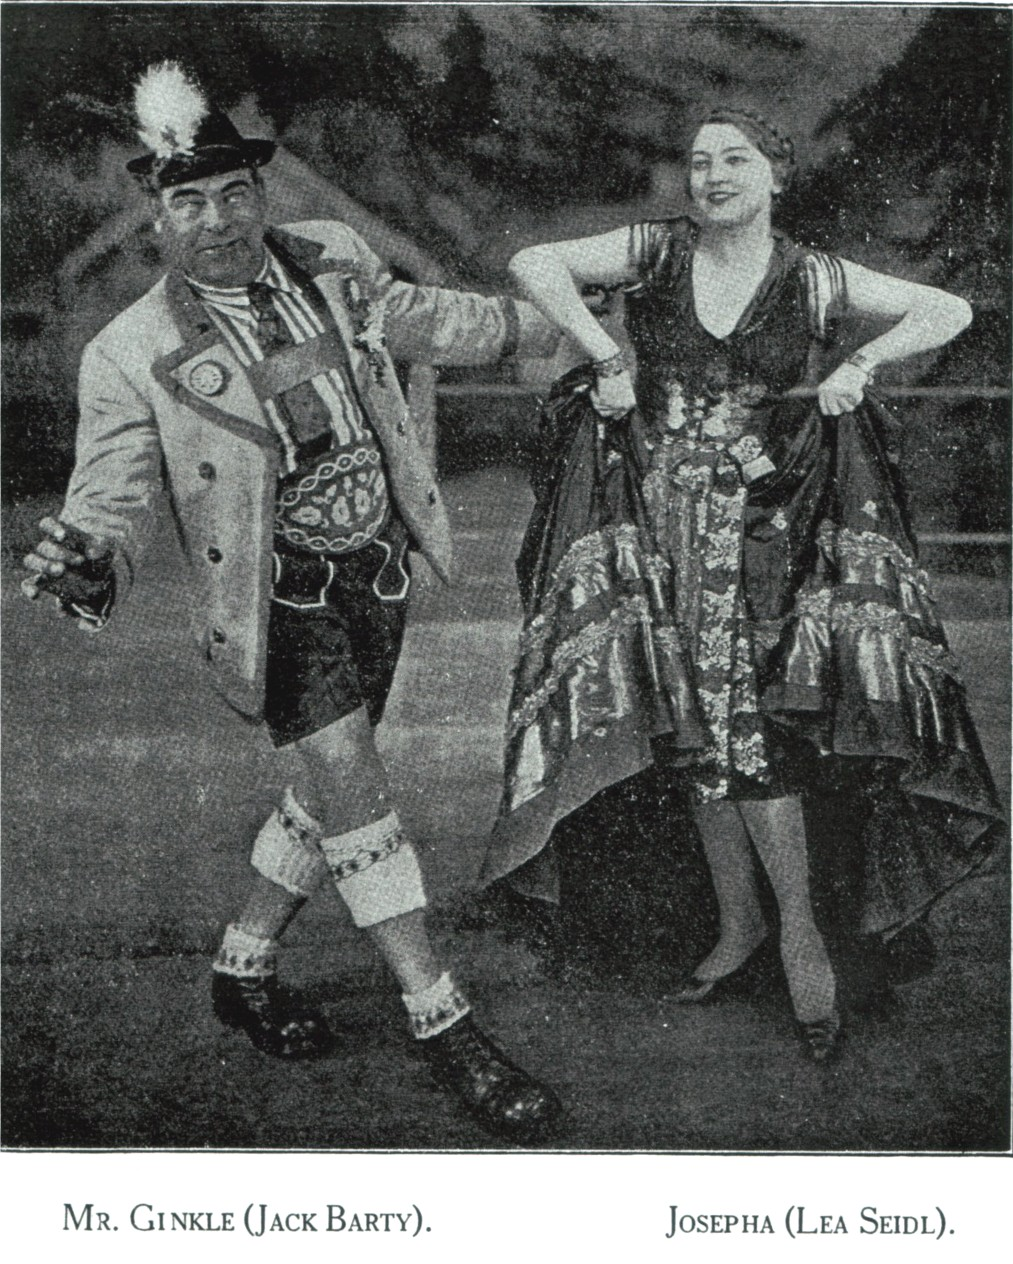 Lea Seidl demonstrating how to properly dress and dance in an Alpine setting.